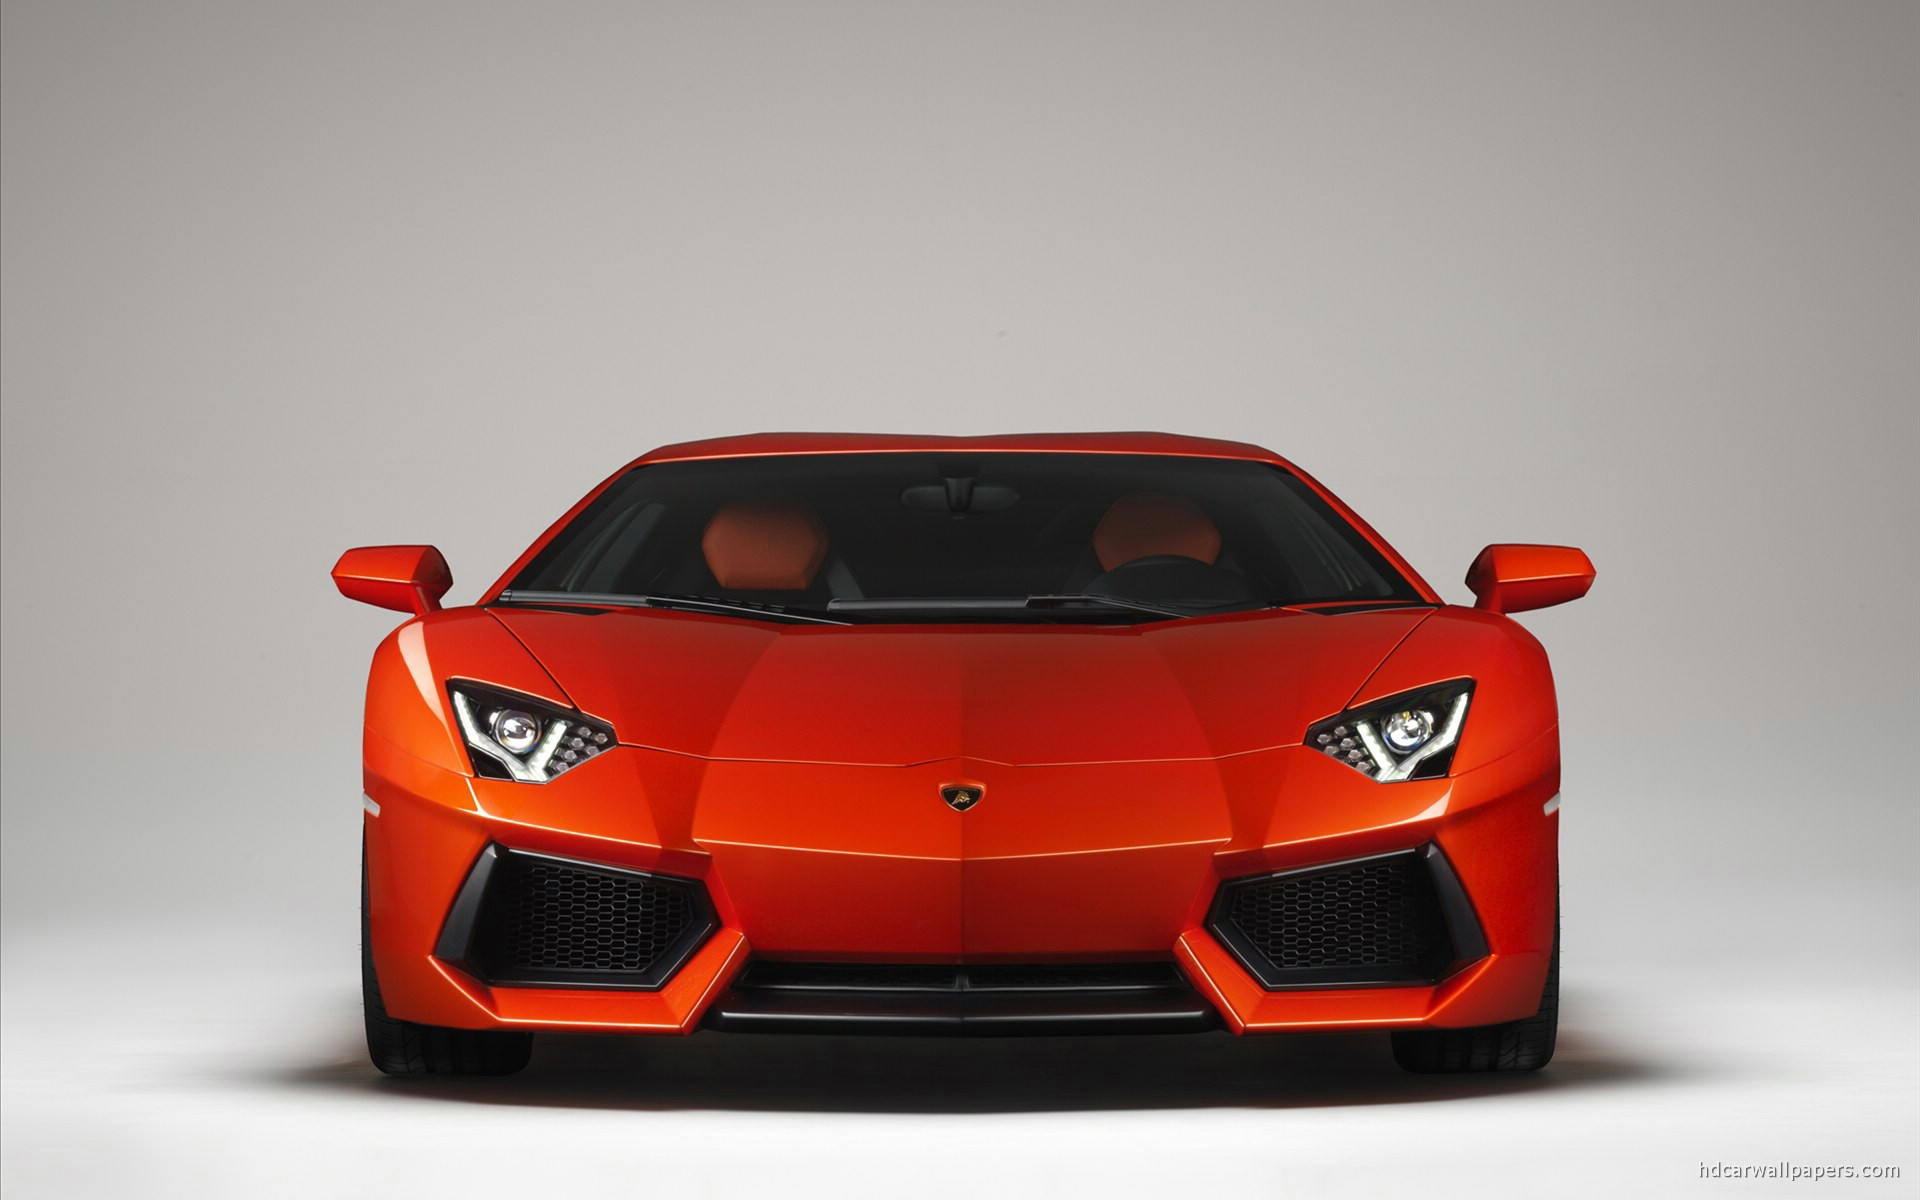 2011 Lamborghini Aventador Wallpaper HD Car Wallpapers 1920x1200